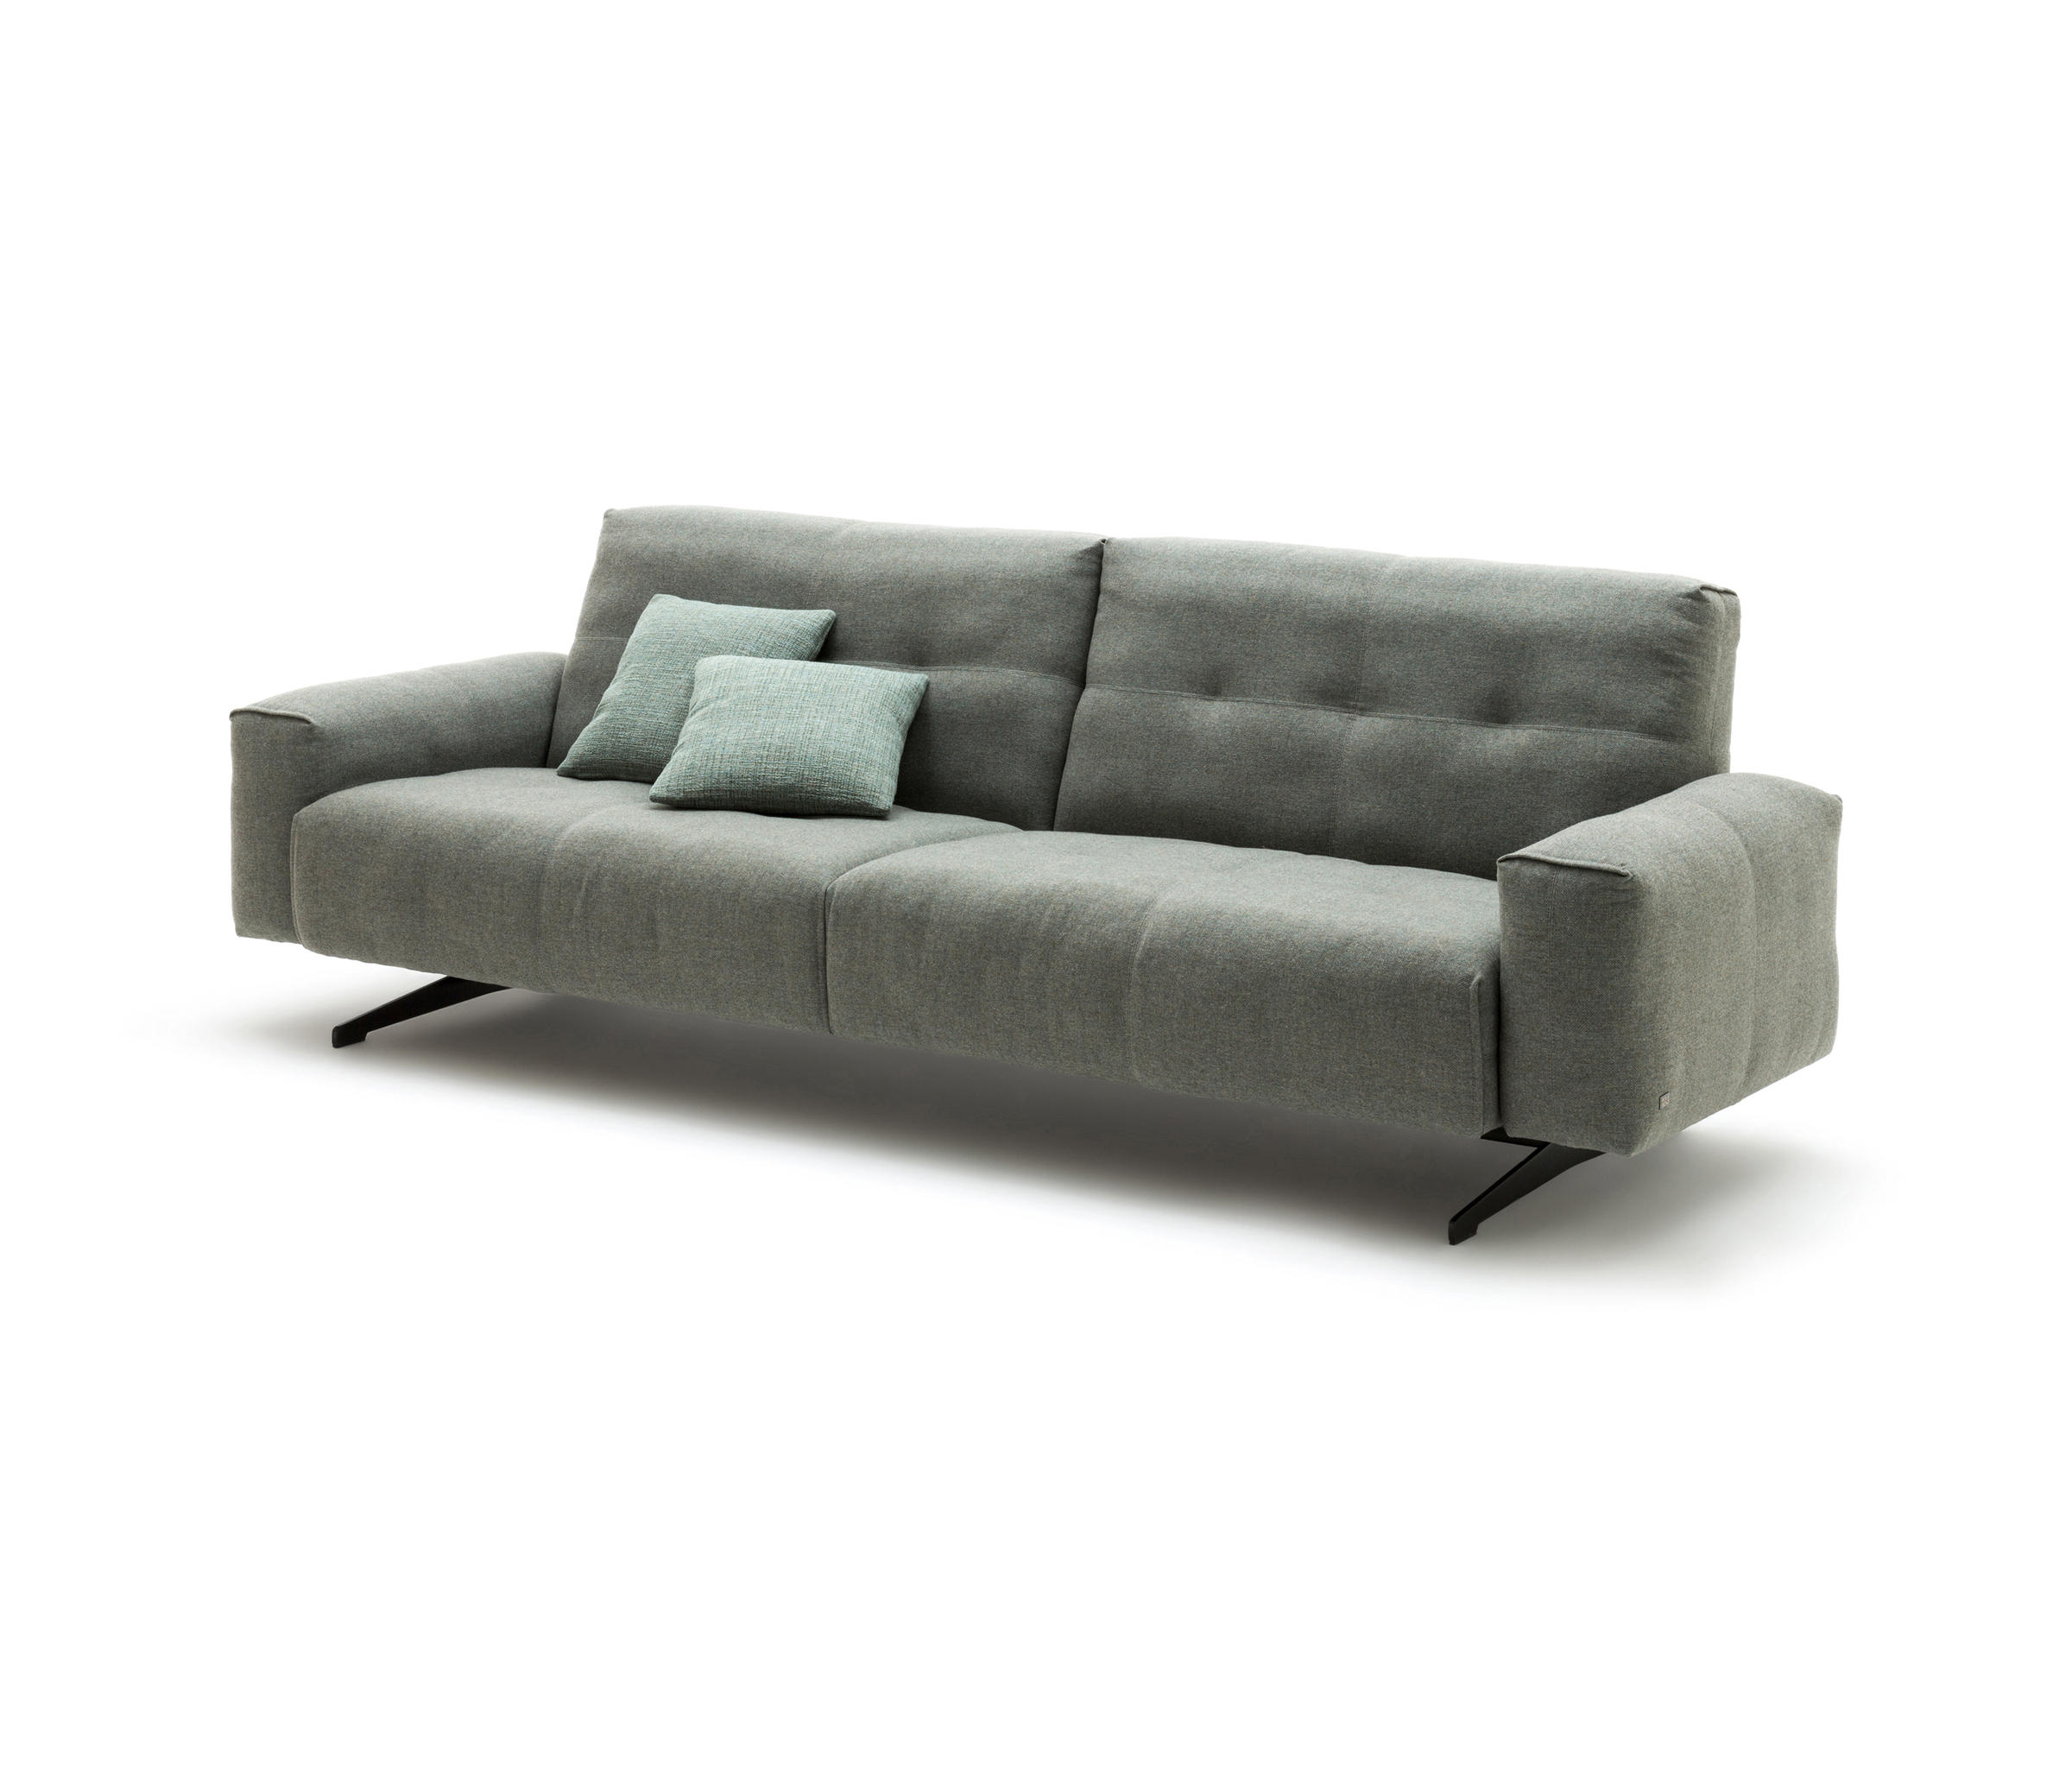 Rolf benz 50 loungesofas von rolf benz architonic for Rolf benz nagold